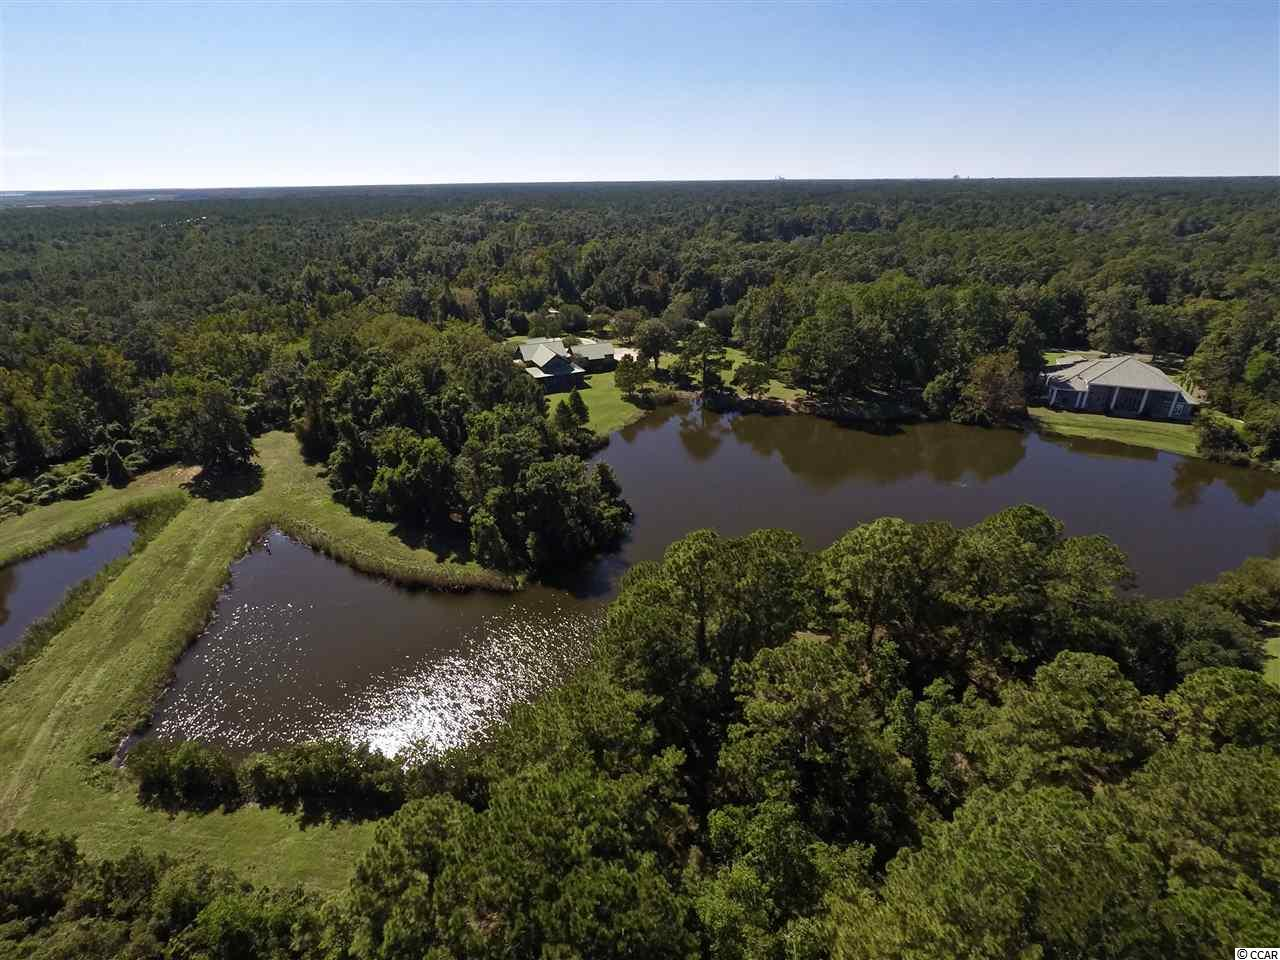 Build your new luxury home on this half-acre water view lot in the gated oceanfront community of DeBordieu Colony.  This 2700-acre private beach and golf community is located between Charleston and Myrtle Beach, just south of Pawleys Island. Along with being one of the few original historic beachfront communities on the East Coast, this unique subdivision features some amazing amenities including: hundreds of acres of wildlife and nature preserves; the Oceanfront Beach Club with fine dining and casual dining, playground, clubhouse and two pools; fitness center and tennis courts; and private Boat Landing with saltwater creek access to North Inlet, 24-hour on-site security and manned gate, and the Pete Dye designed, exclusive DeBordieu Club golf courses. Whether you are into golf, fishing, boating, tennis, nature hikes or relaxing on a private beach, you are just a short golf-cart ride away from it all inside DeBordieu Colony.